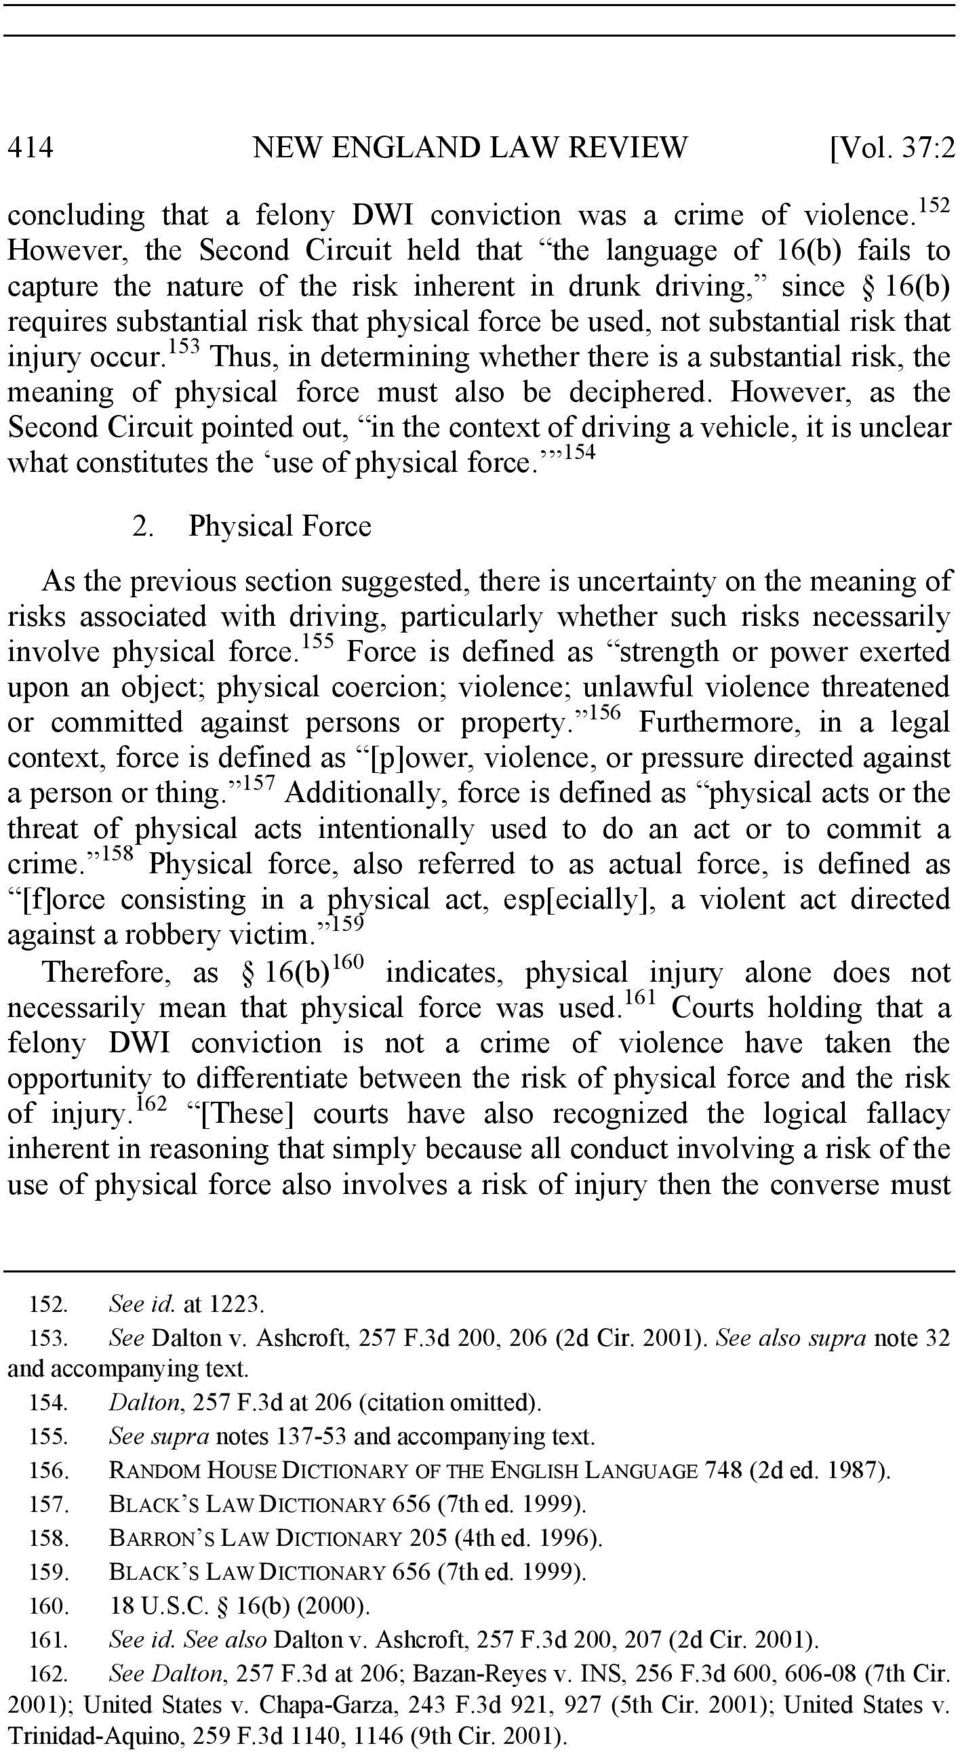 not substantial risk that injury occur. 153 Thus, in determining whether there is a substantial risk, the meaning of physical force must also be deciphered.